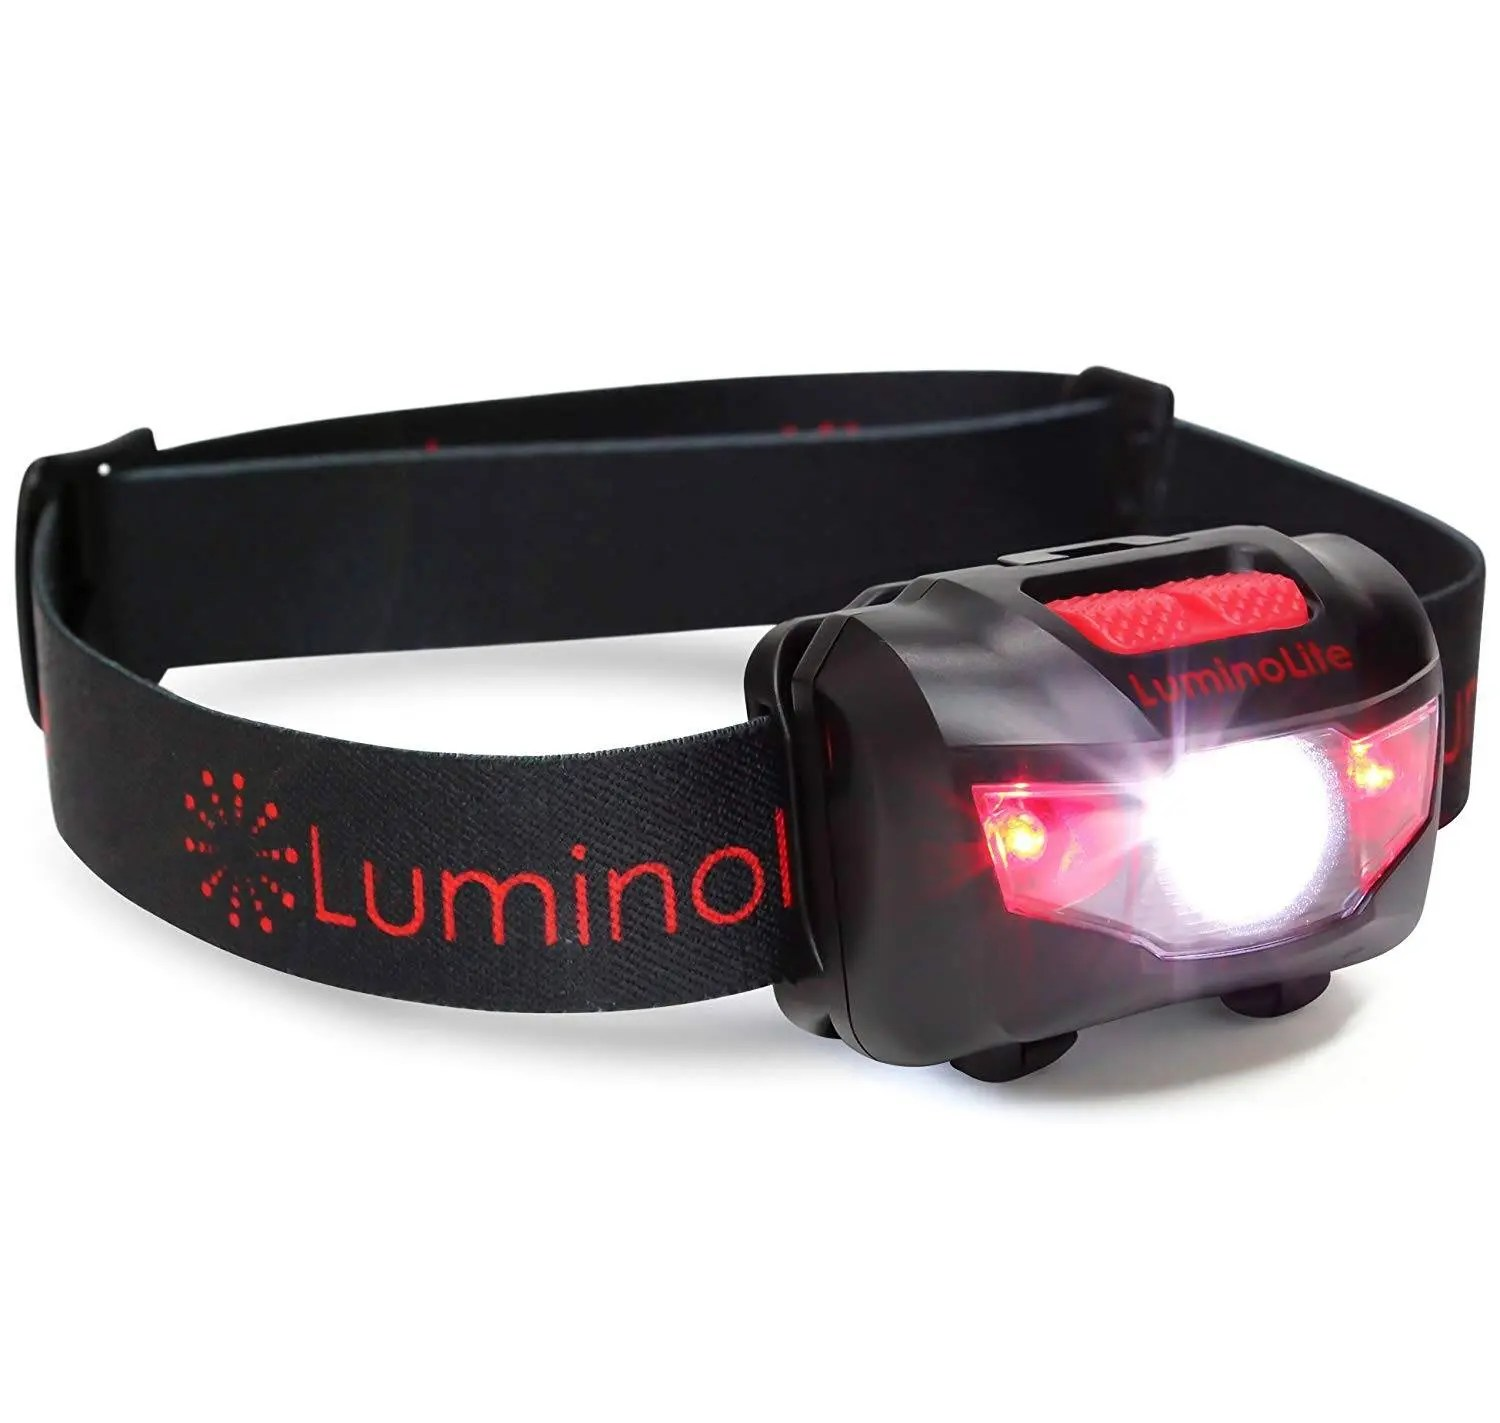 LuminoLite CREE LED Headlamp